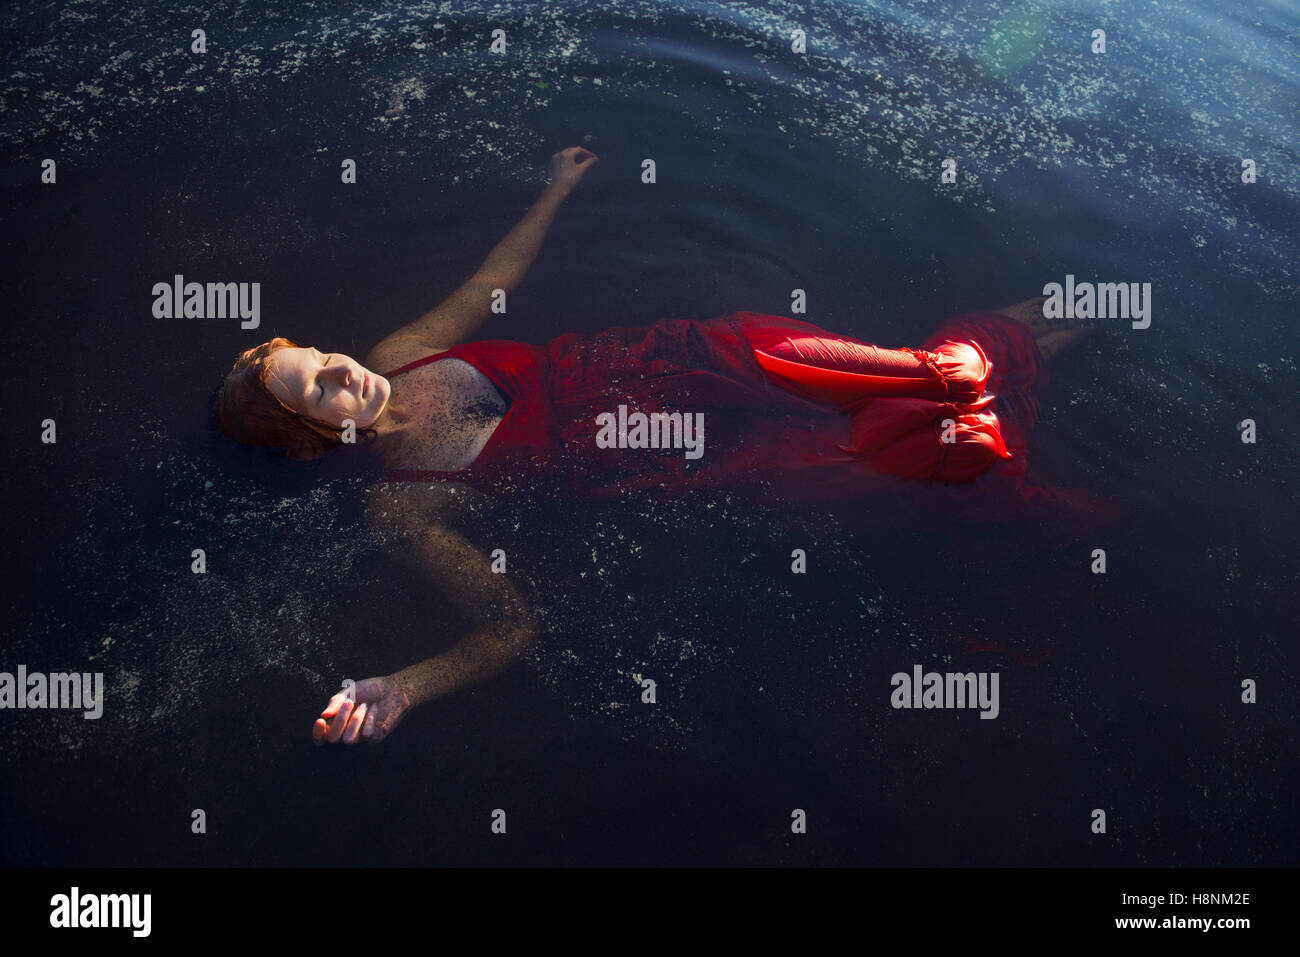 Woman in red dress floating on water - Stock Image